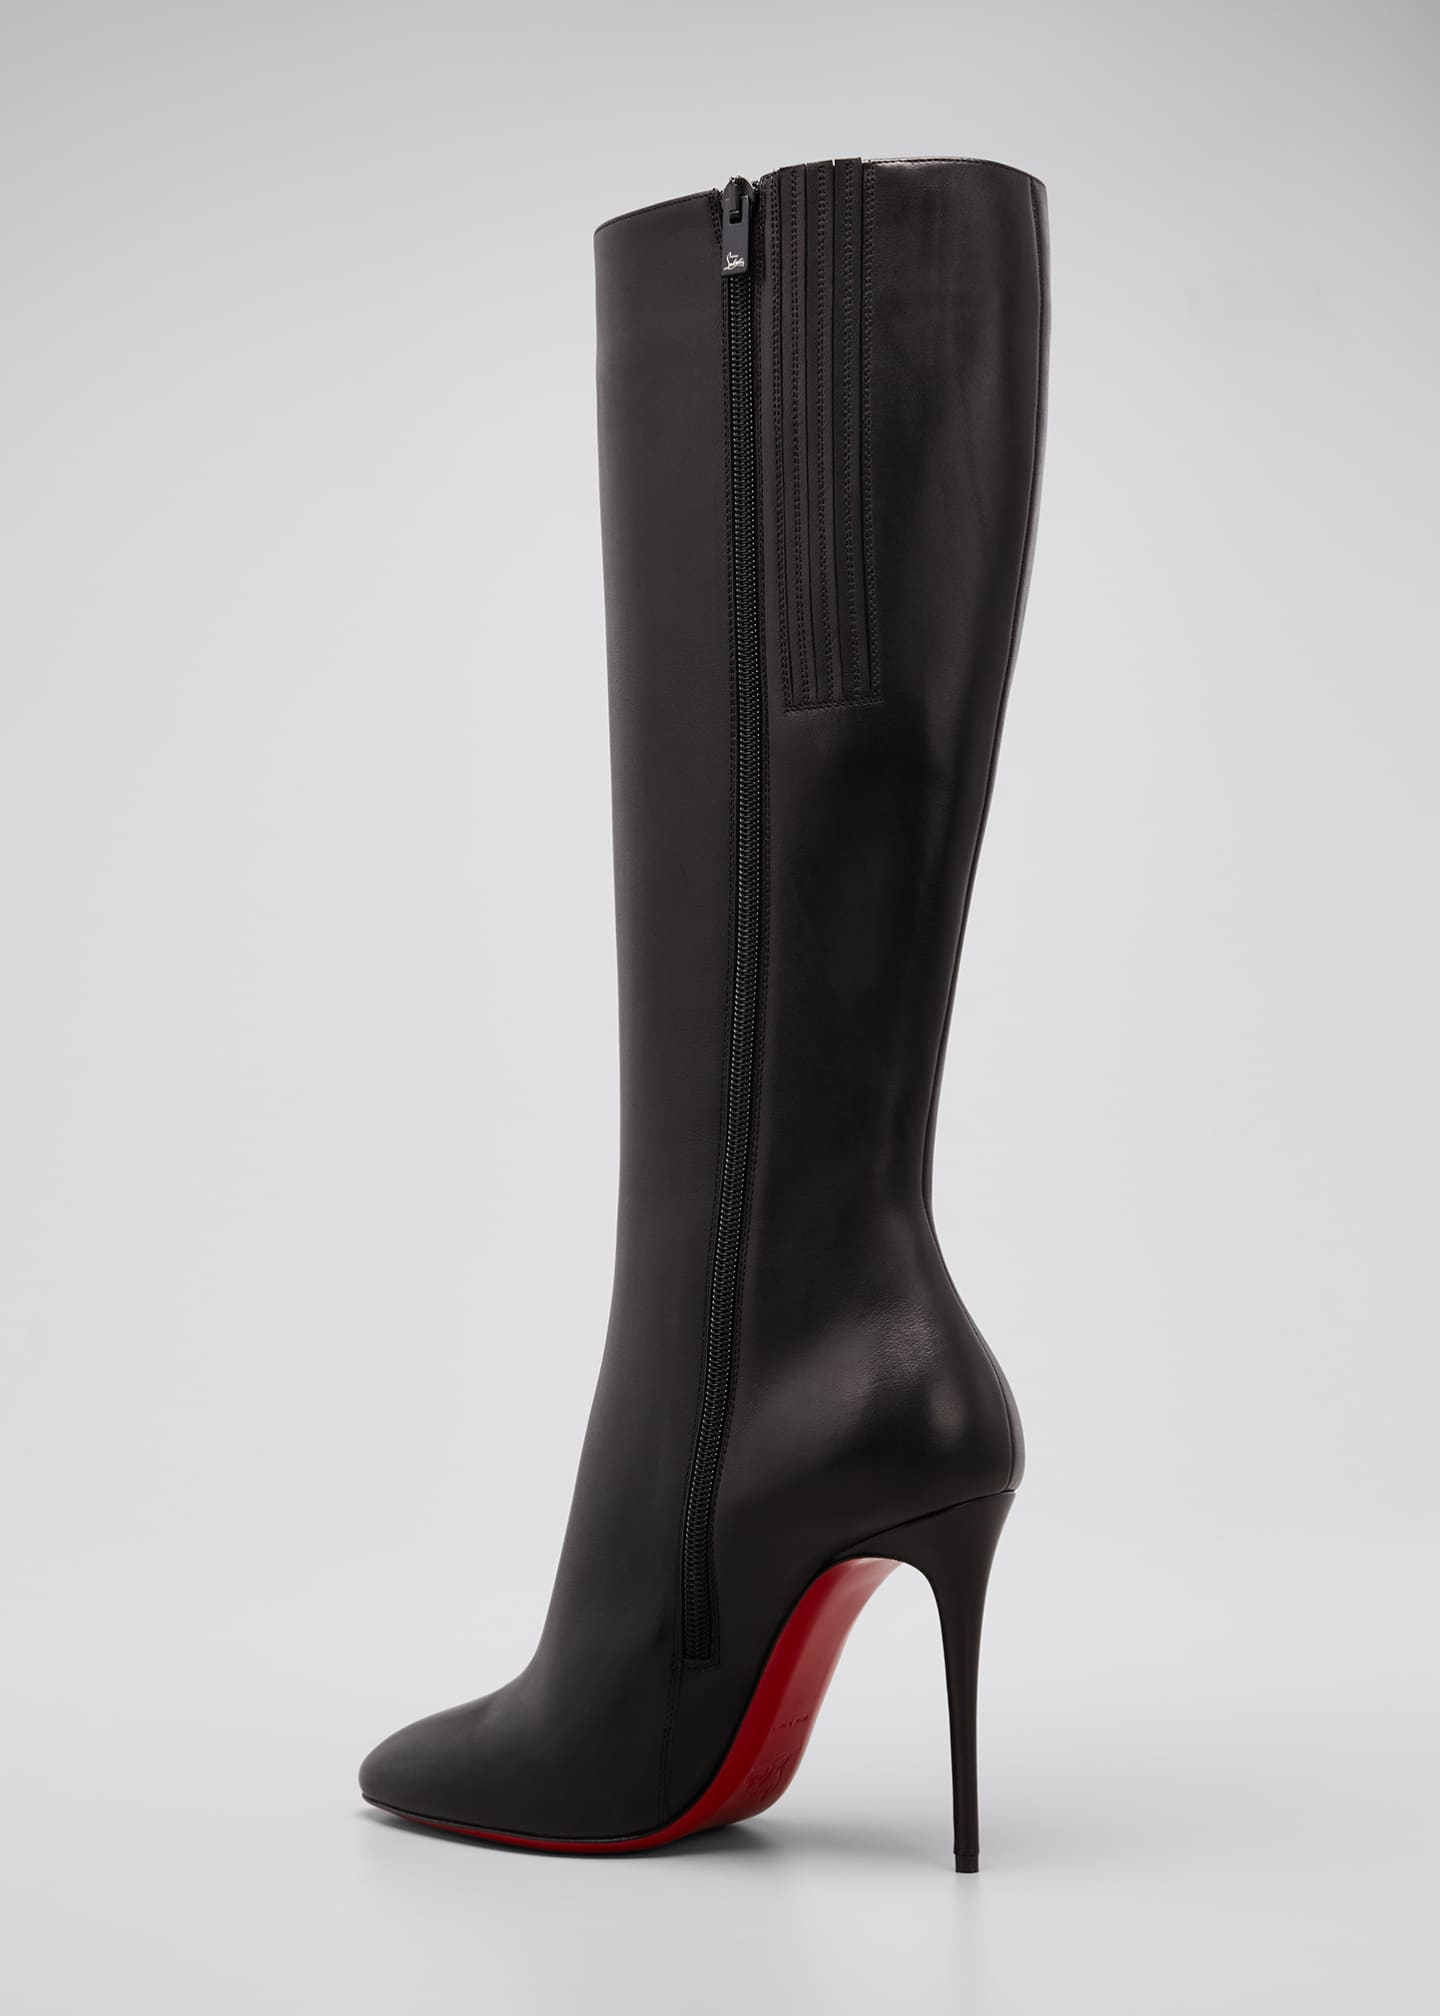 Image 4 of 5: Eloise Zip Red Sole Boots